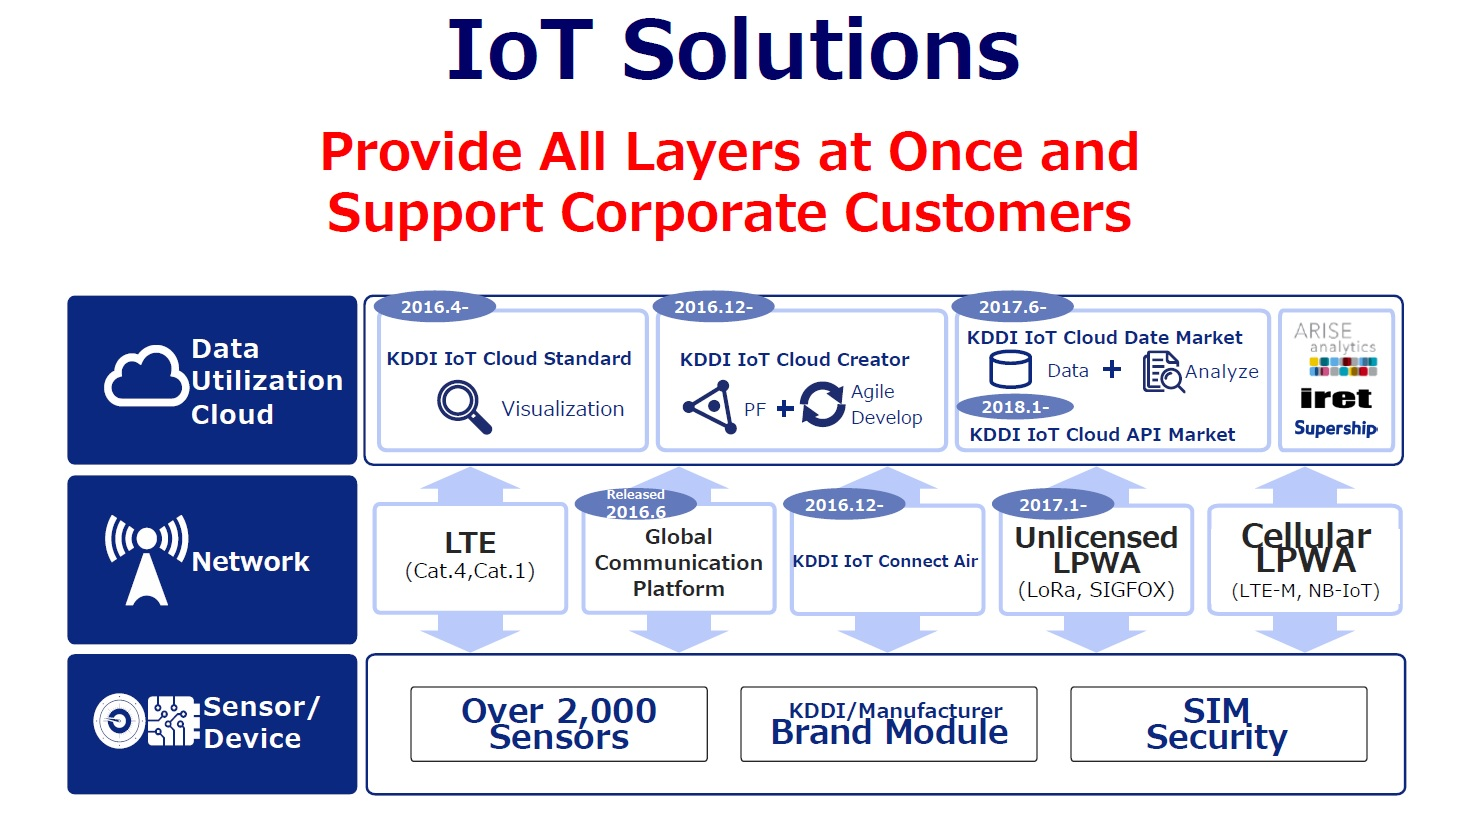 Operator Watch Blog: KDDI's M2M / IoT History, Solutions, Cloud Data